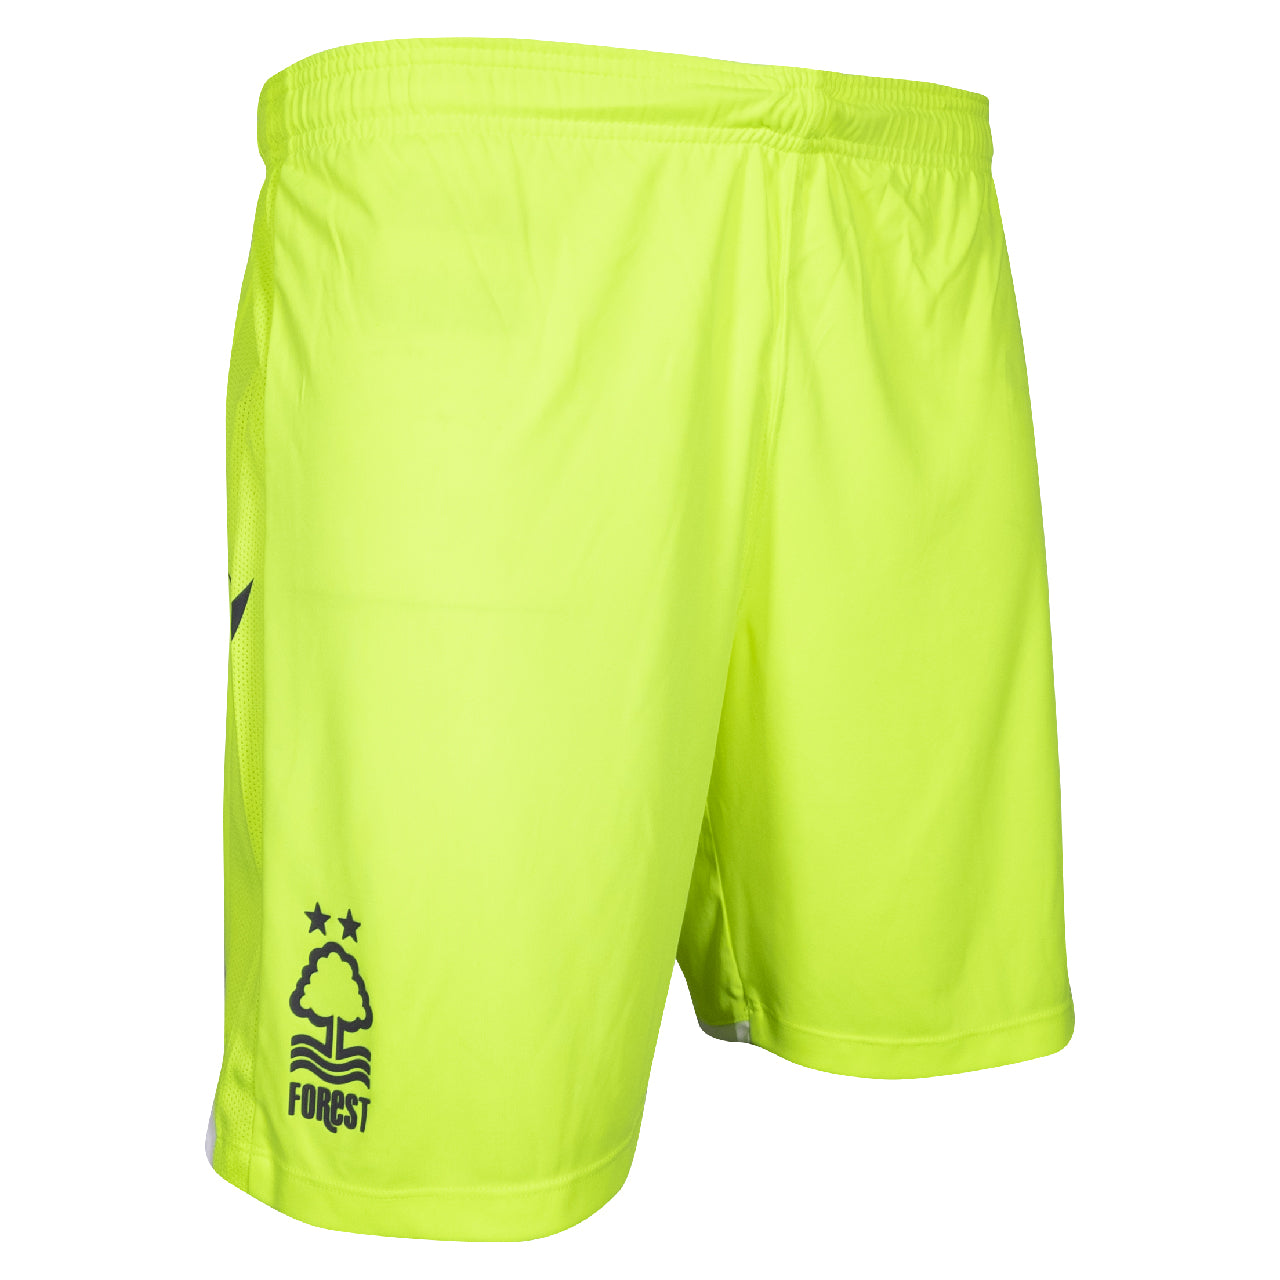 NFFC Mens Yellow Goalkeeper Shorts 2019/20